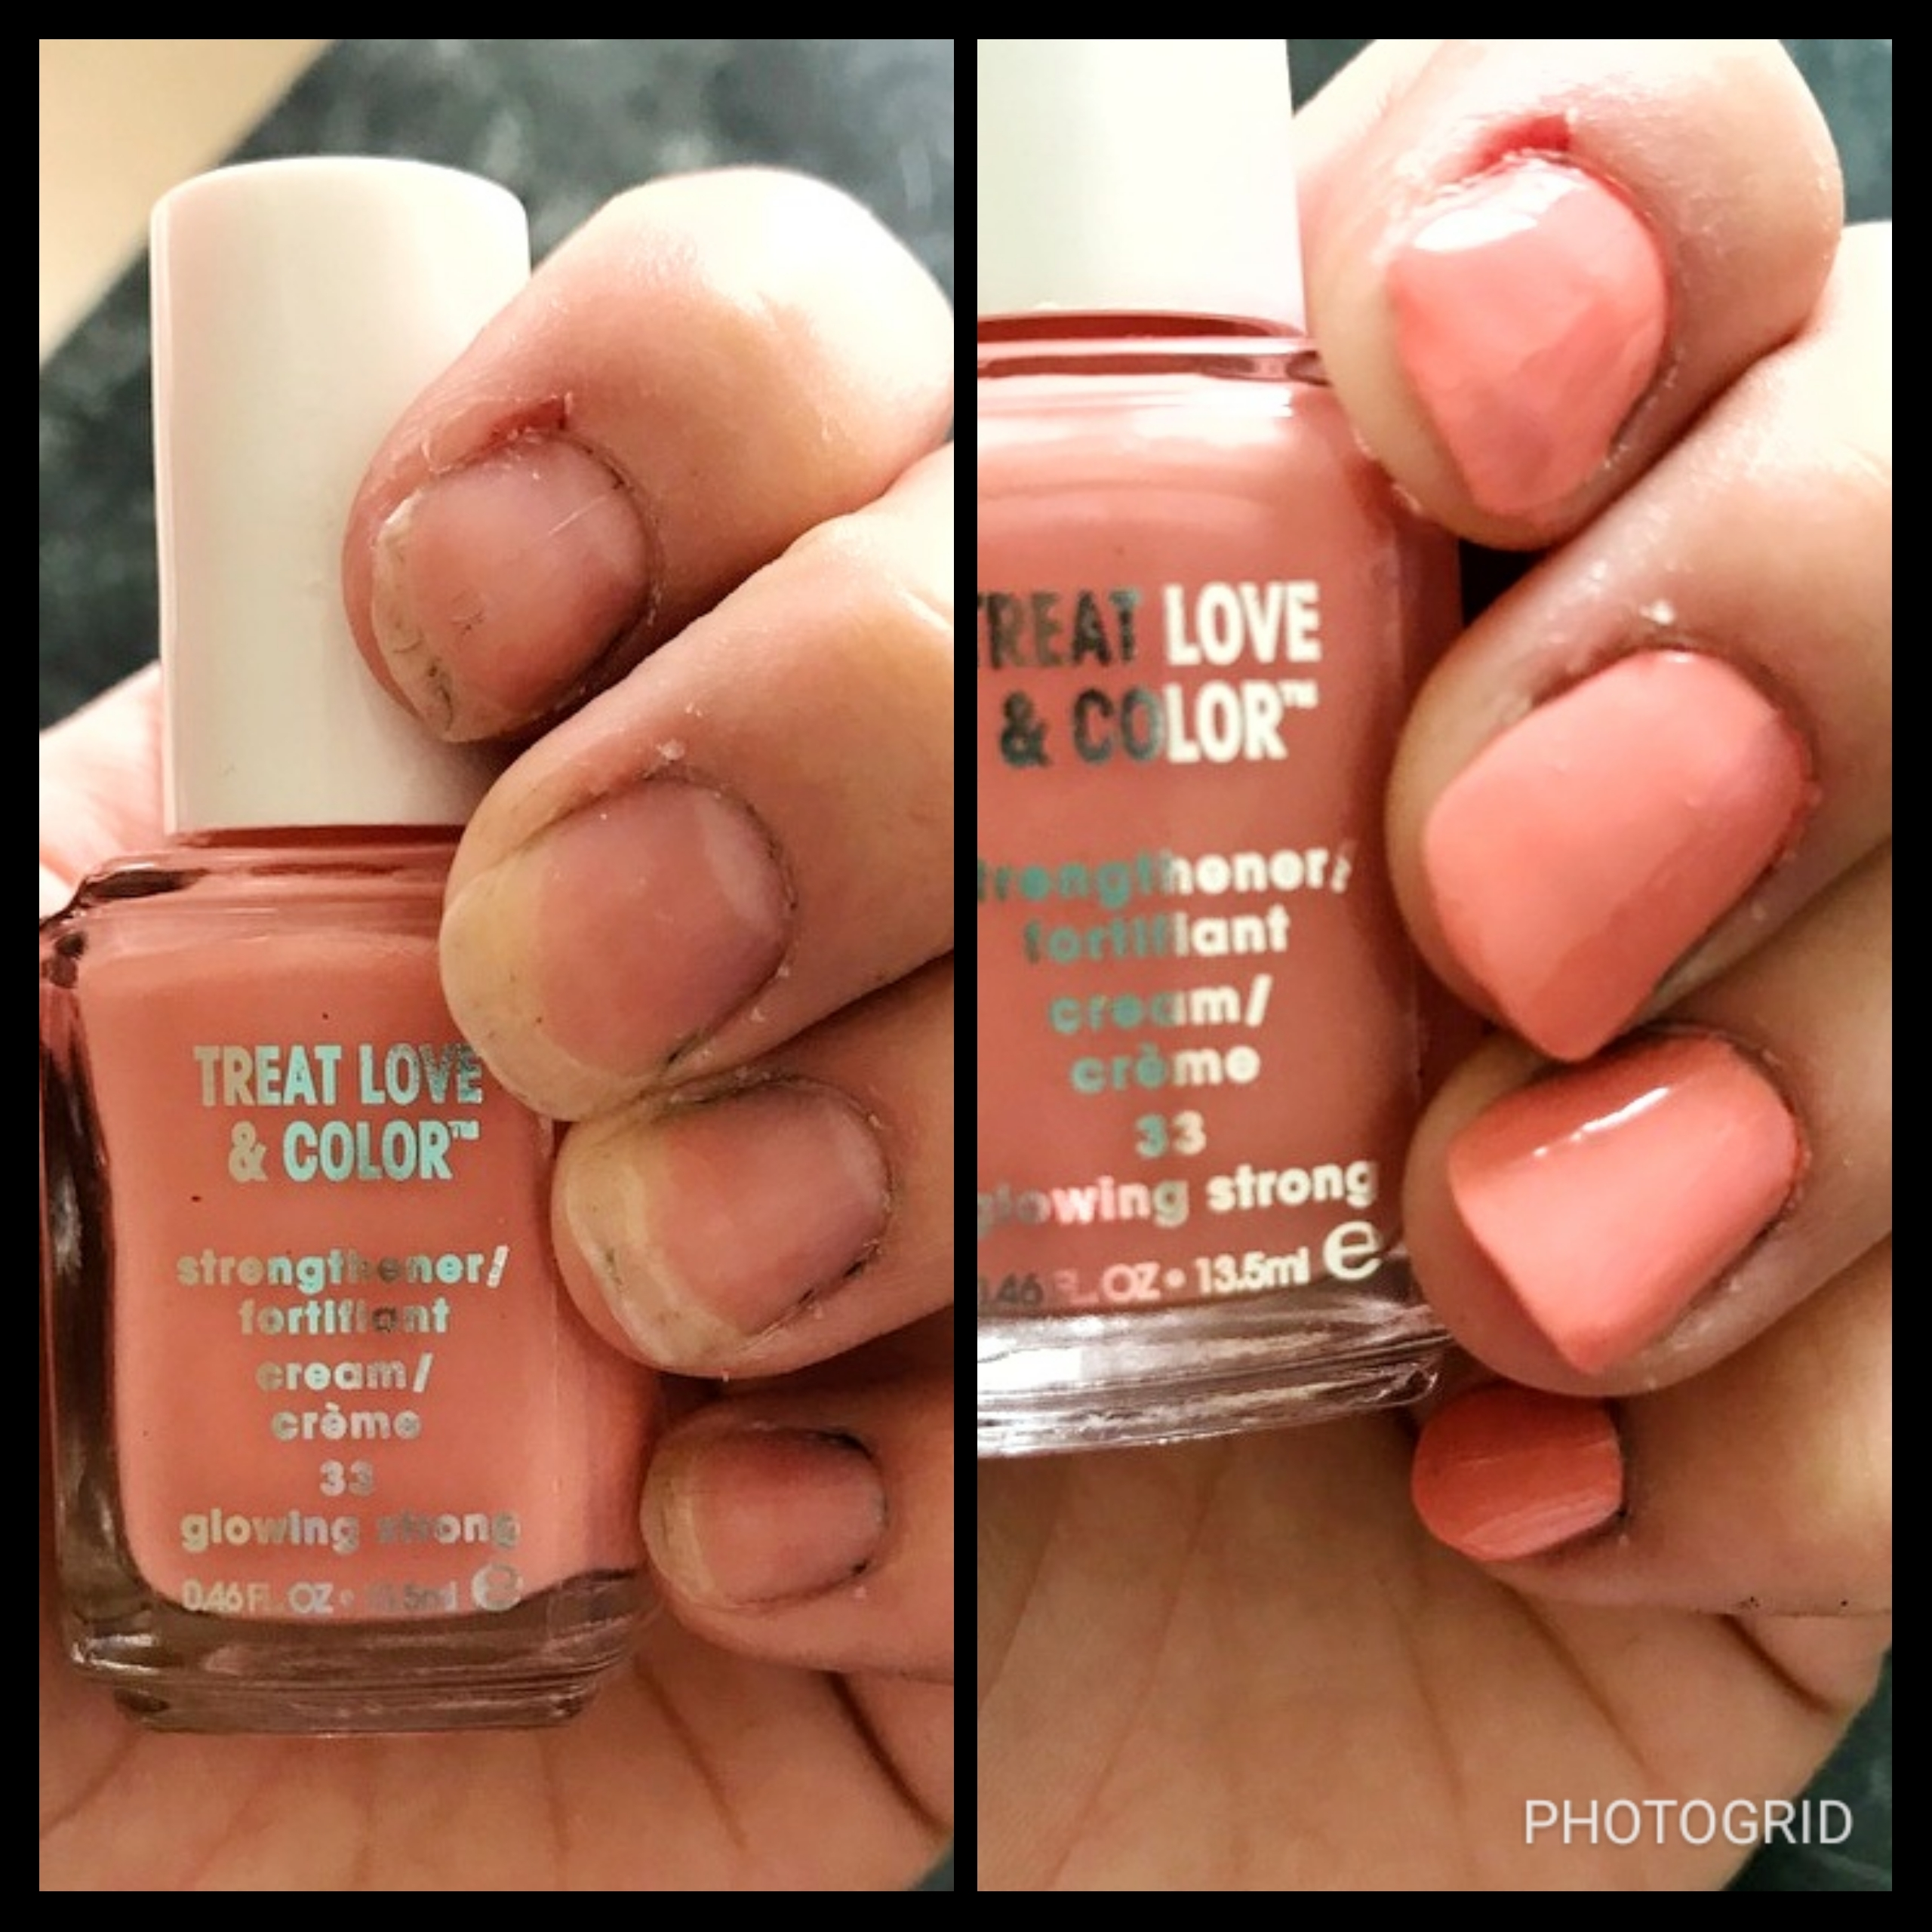 essie Treat Love & Color reviews in Nail Care - ChickAdvisor